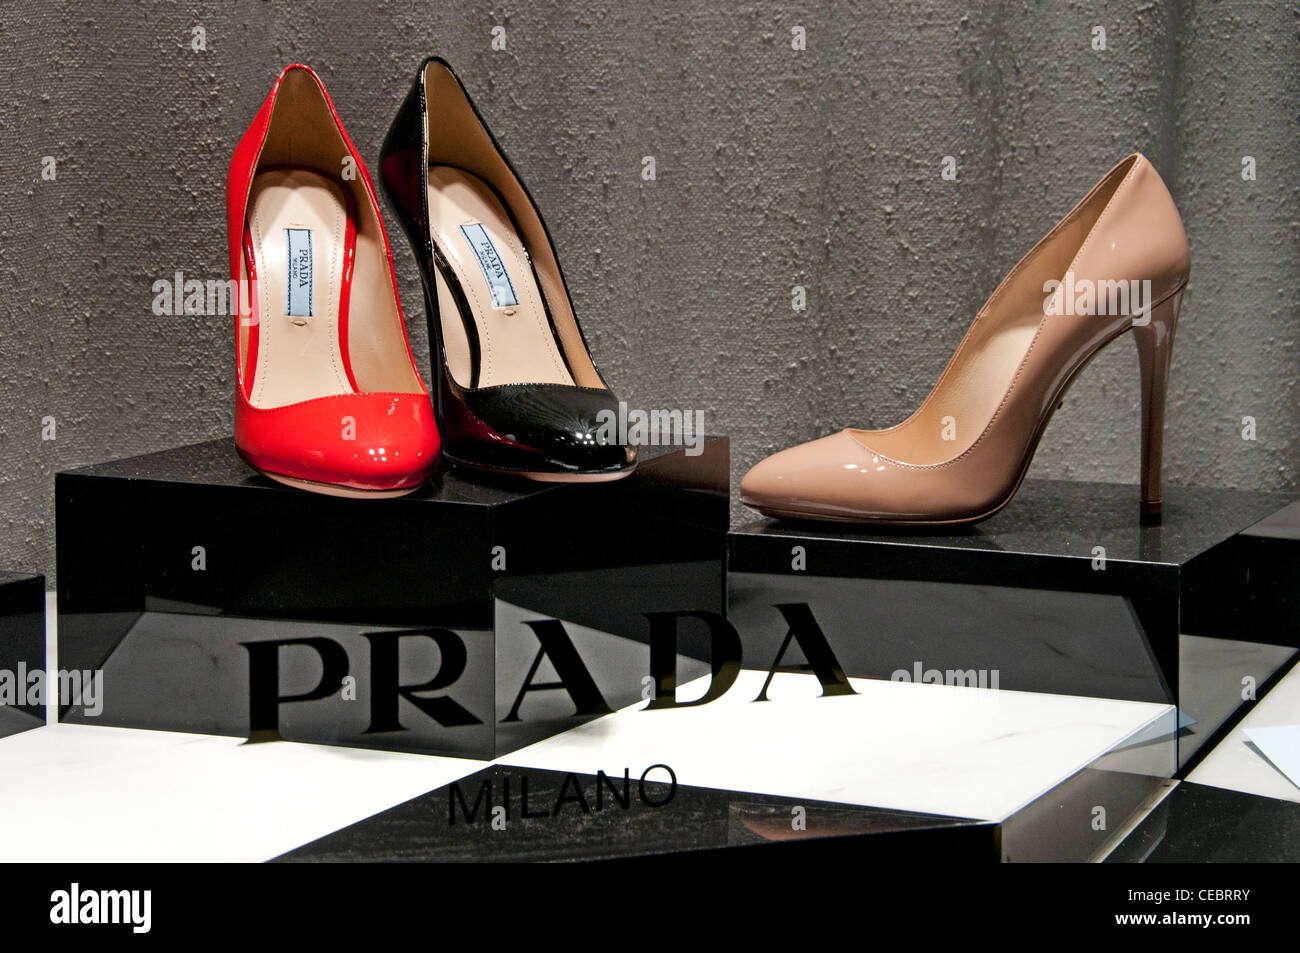 3b559fc8bbae Prada Store Paris Avenue Montaigne high fashion designer couturier France -  Stock Image